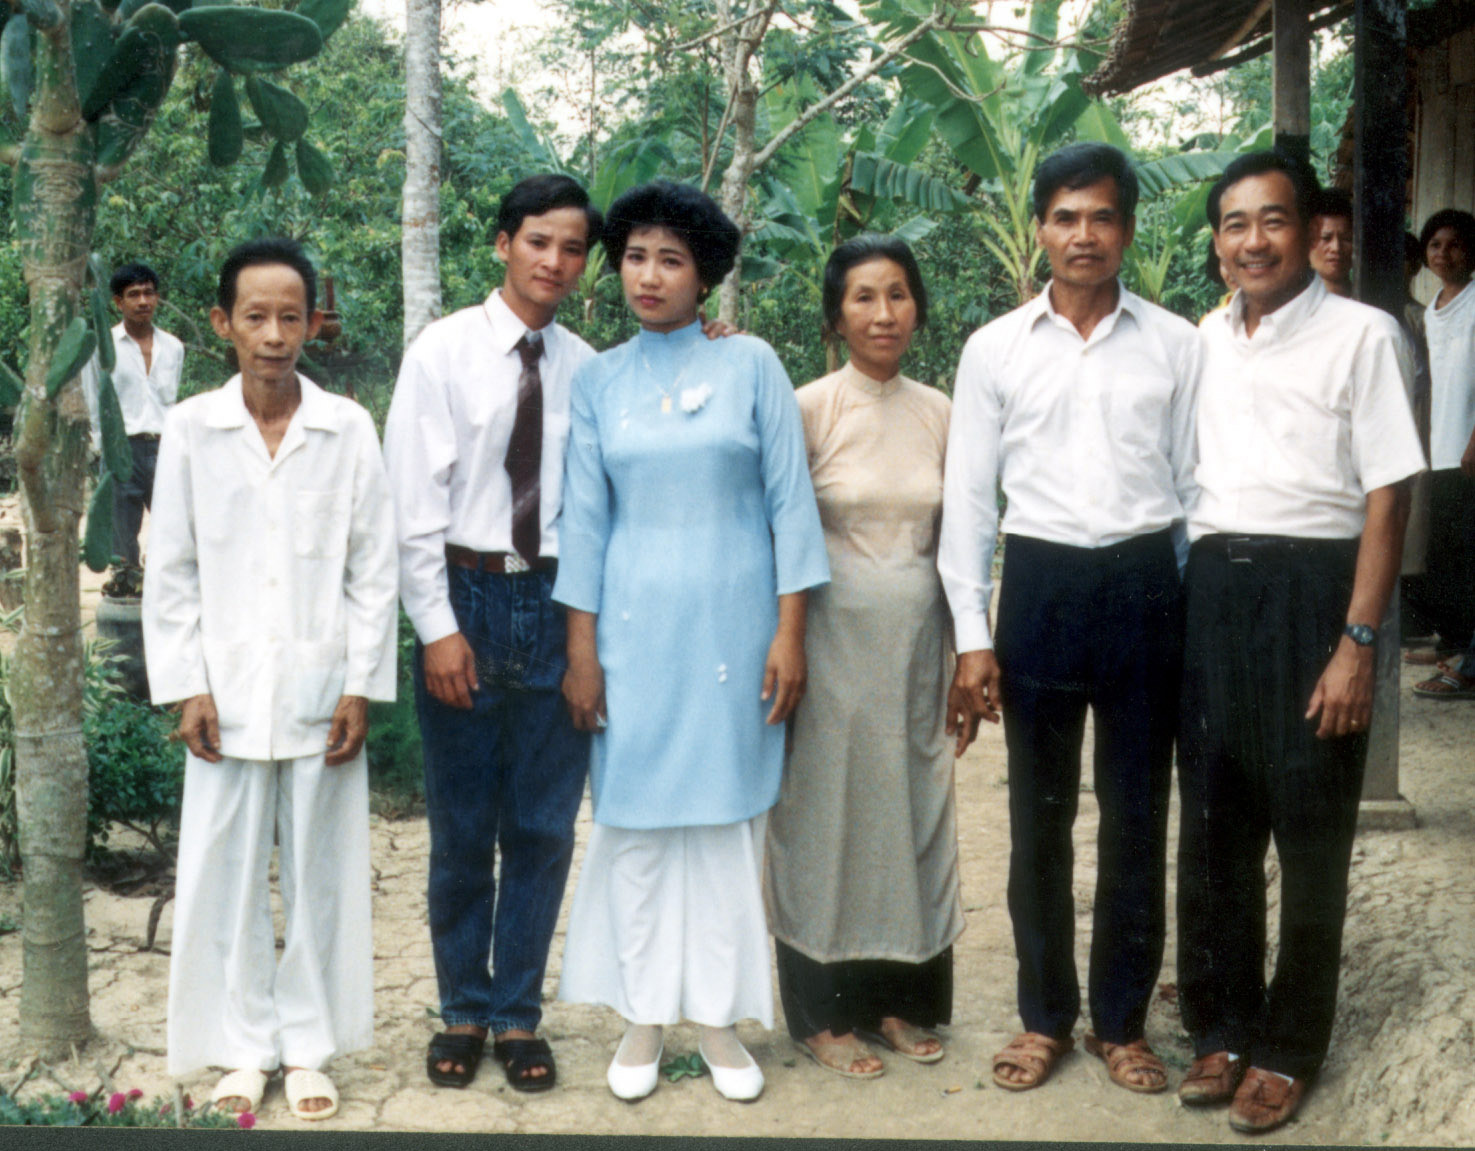 Taken in 1993 in Gia phước.